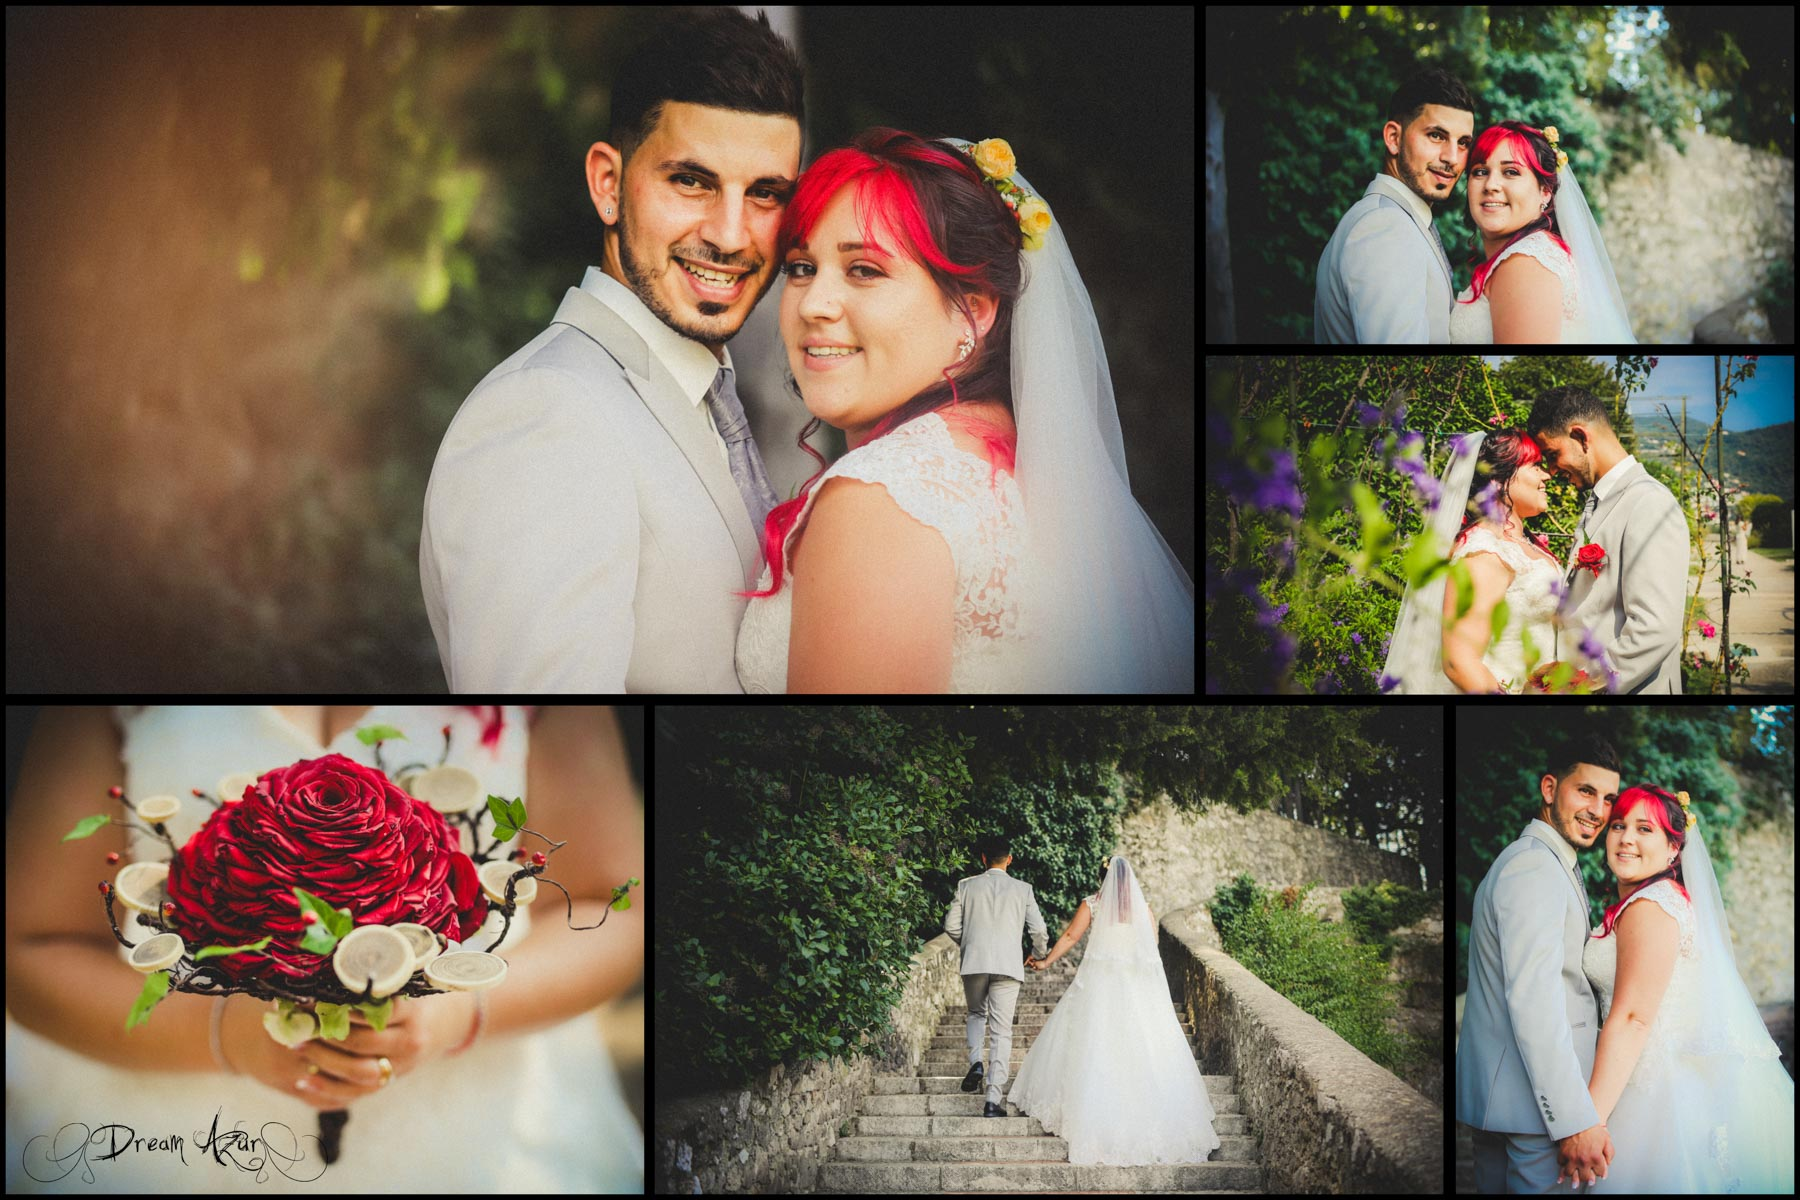 190824COMPO-Mariage-Cindy-et-Anthony-52